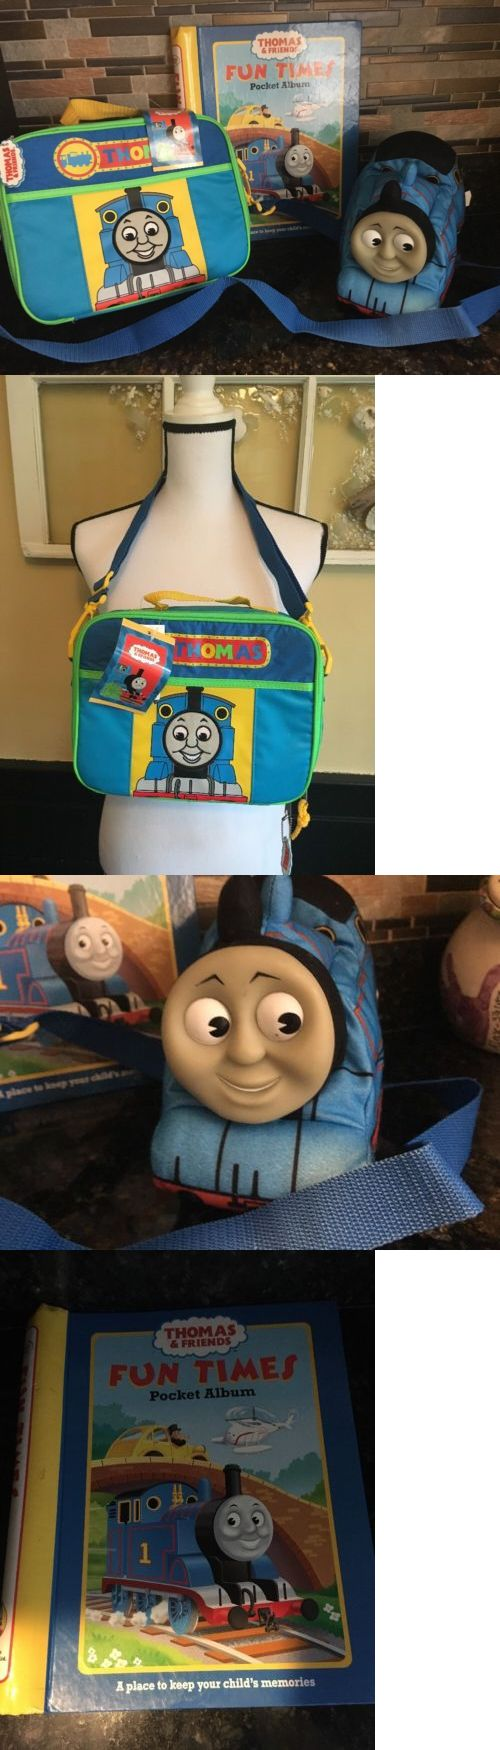 Lunch Boxes Dinnerware 146111: Nwt Lot Thomas The Tank Engine Train Train Storage Lunch Bag Memory Book Doll -> BUY IT NOW ONLY: $35 on eBay!